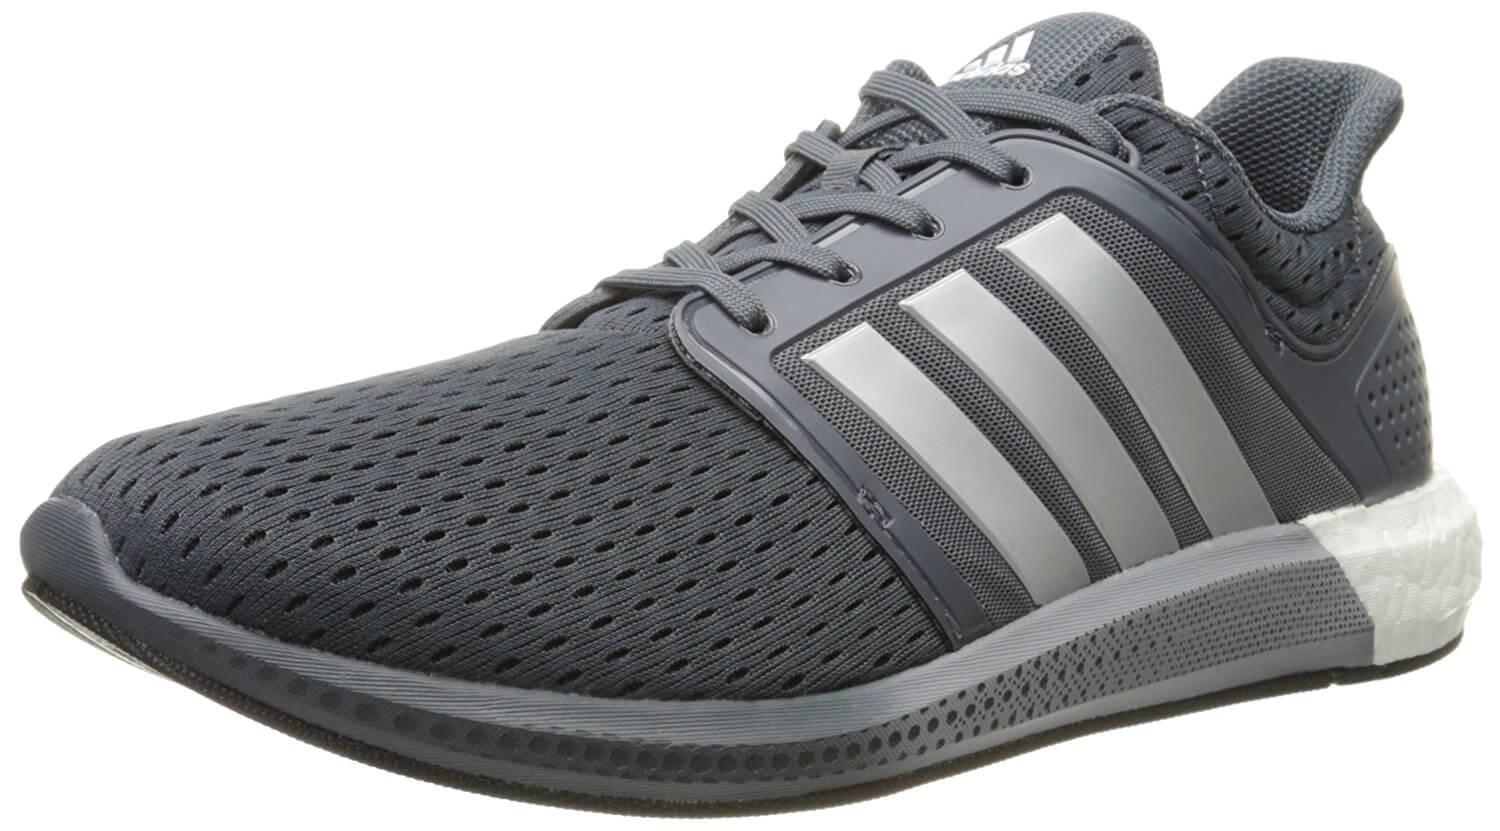 1d098c0b8 Adidas Solar Boost Reviewed - To Buy or Not in May 2019